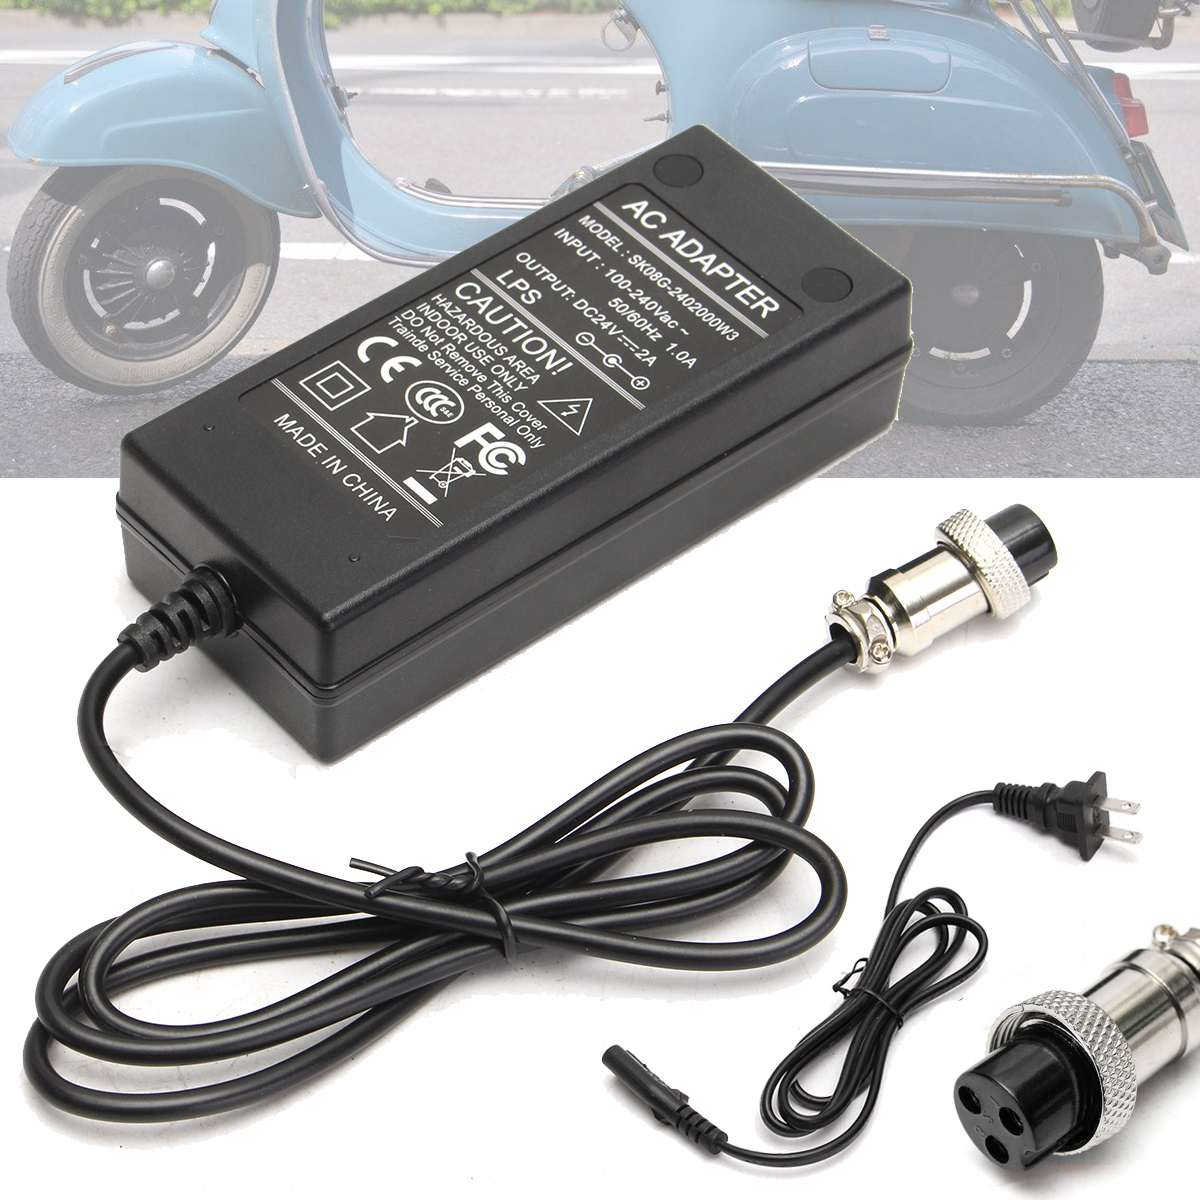 New Black Electric Scooter font b Battery b font Charger 24V Power Adapter DC 2A For